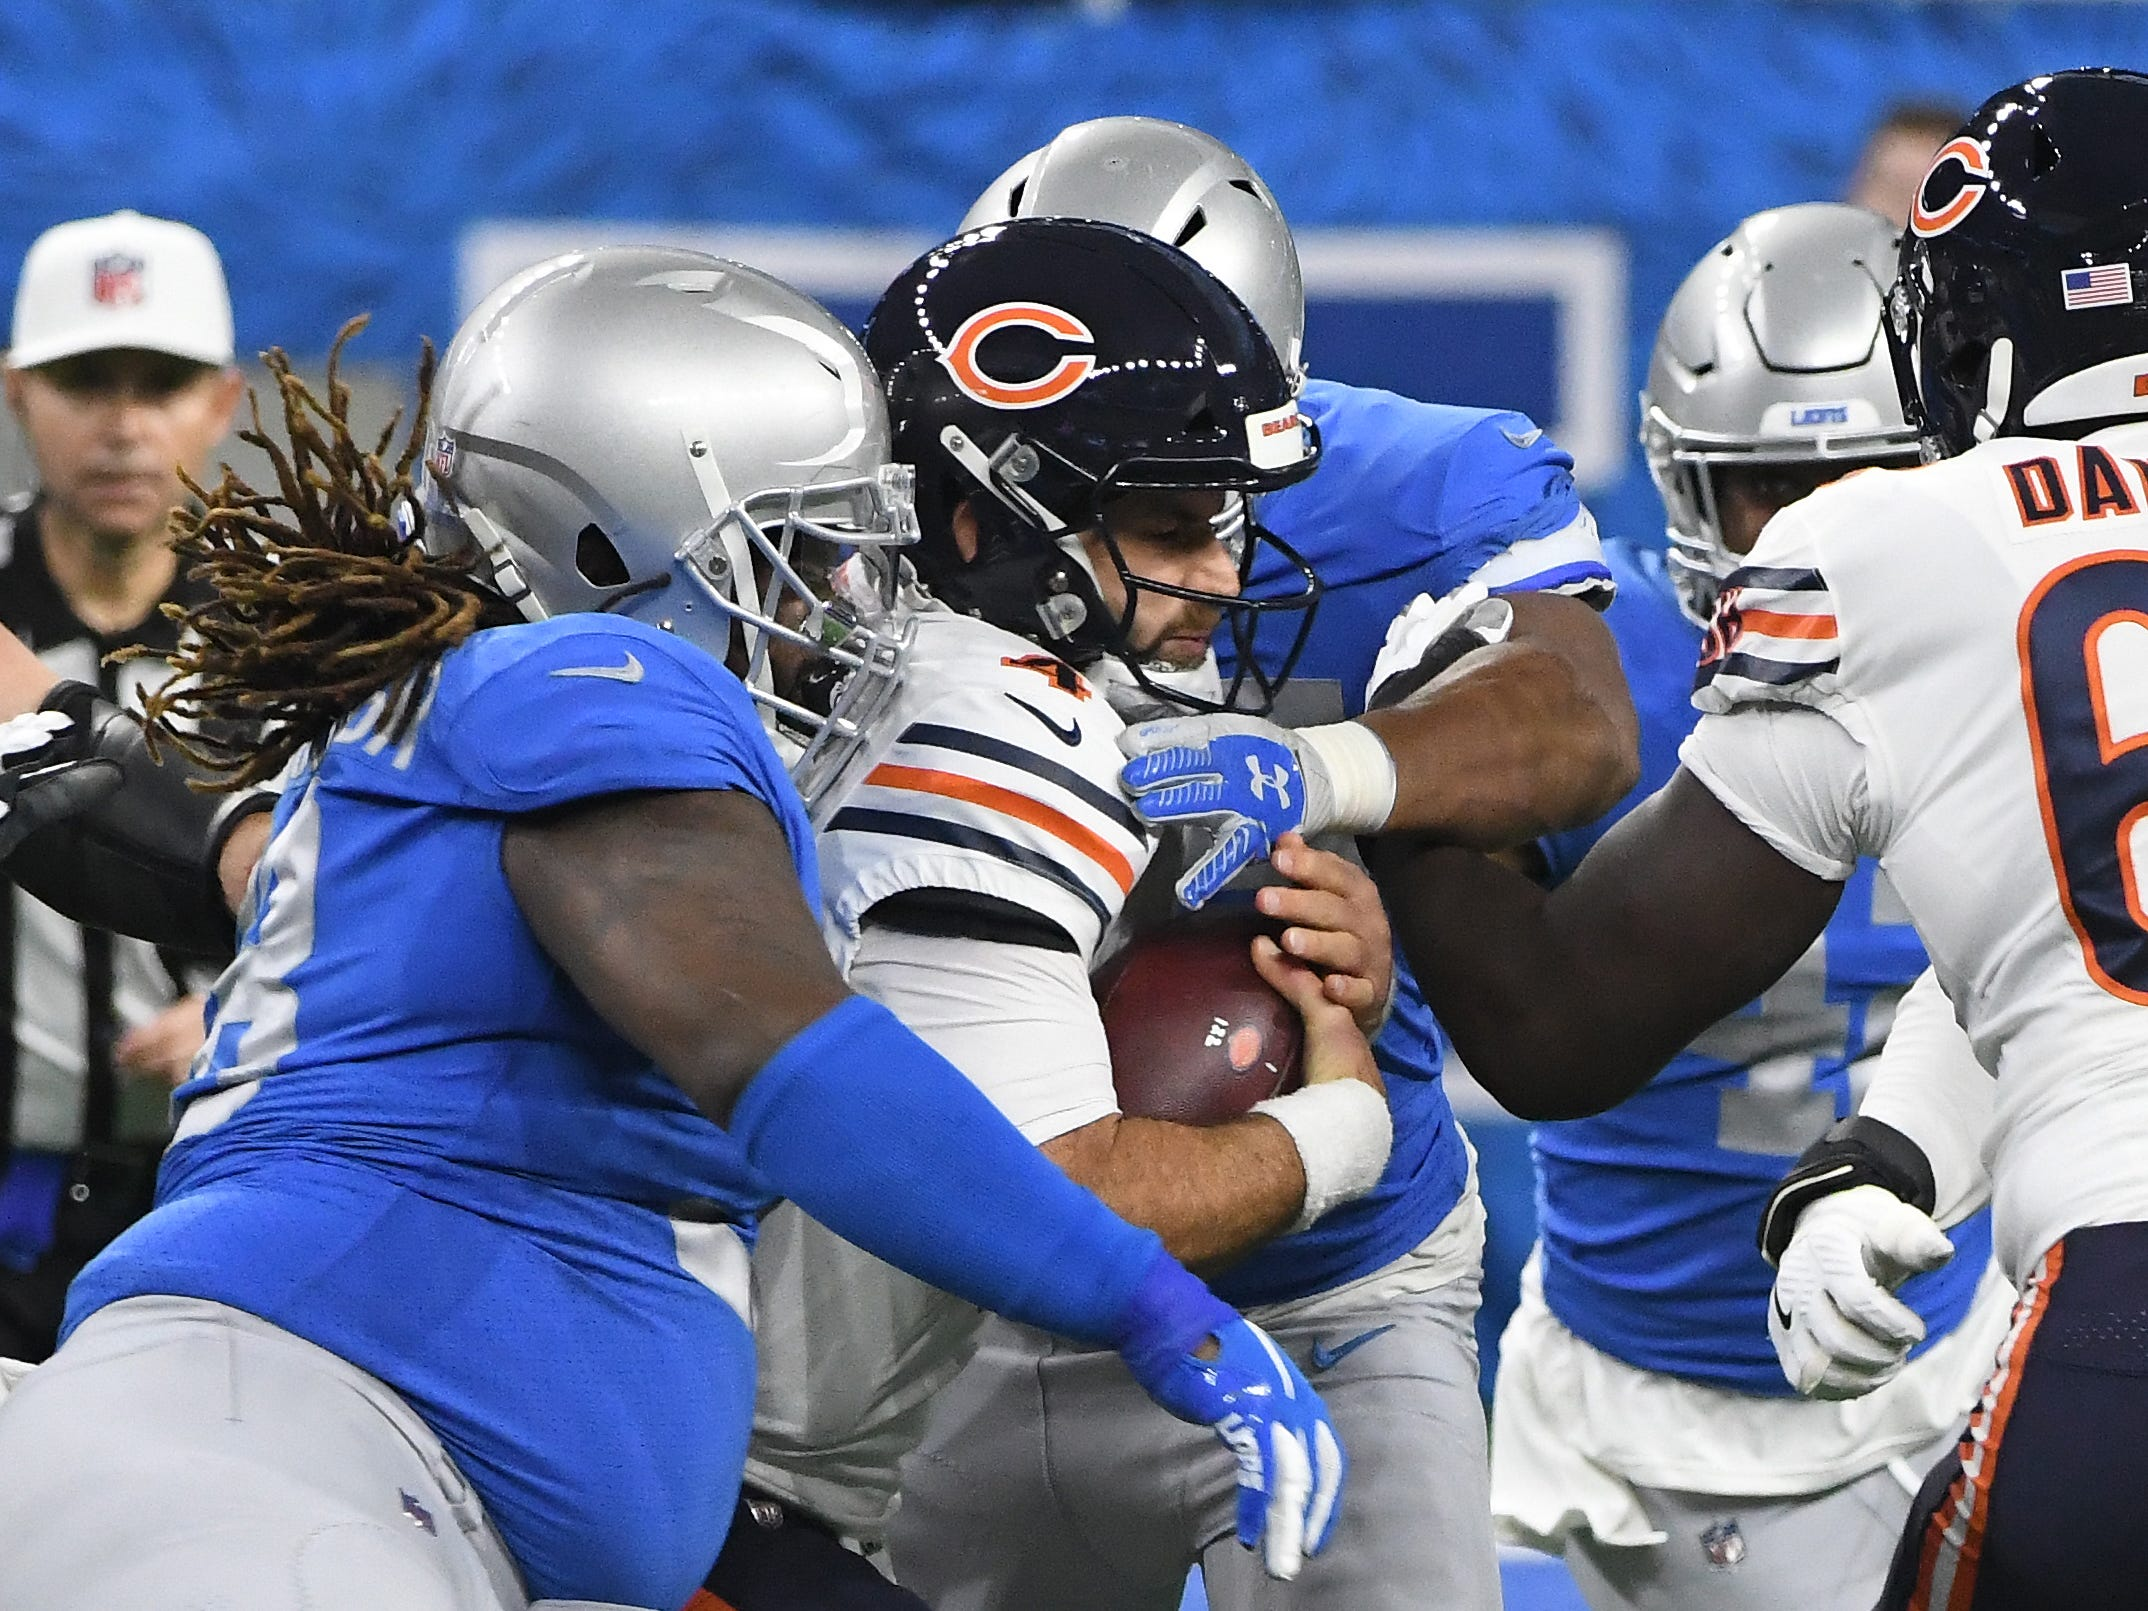 Bears quarterback Chase Daniel is sacked by Lions' Romeo Okwara and Damon Harrison Sr. in the first quarter.